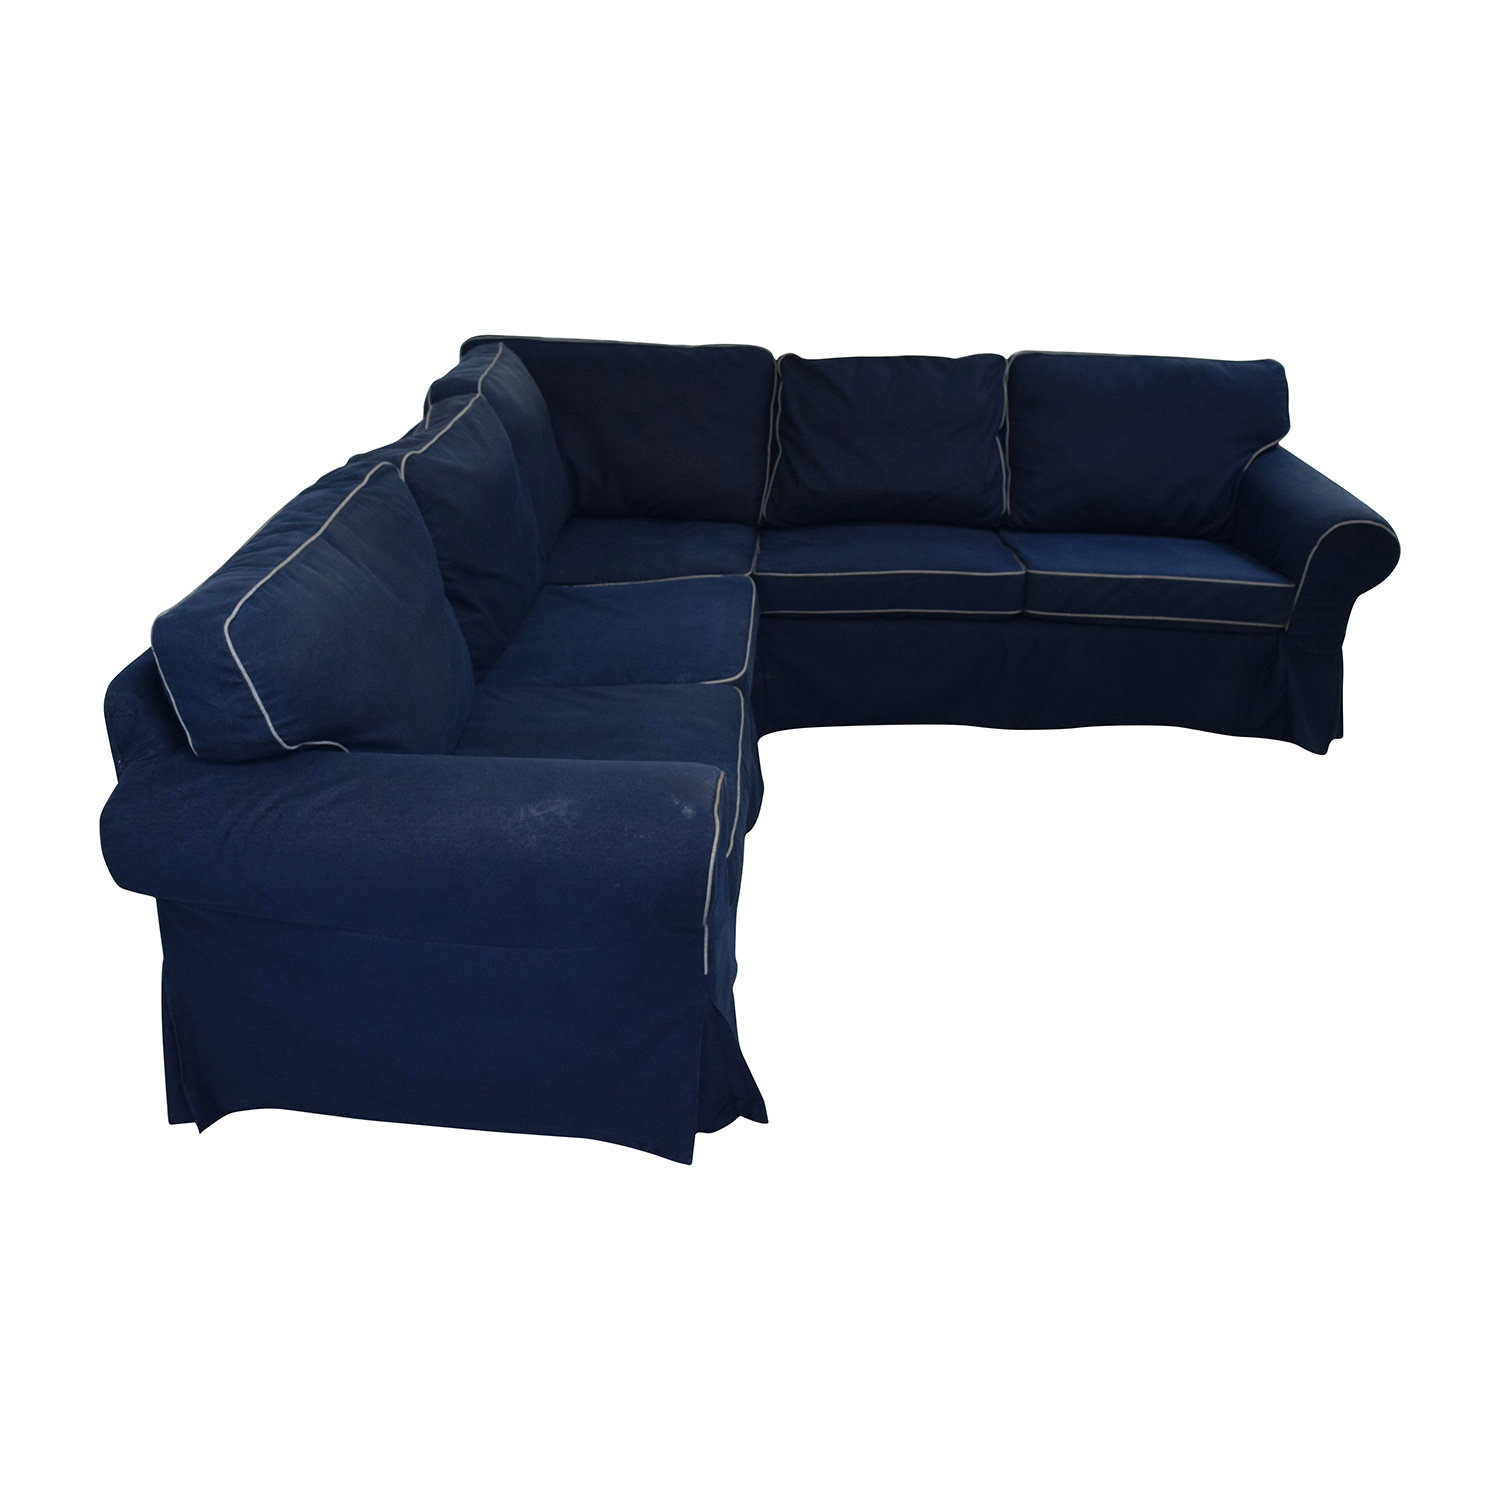 Ektorp Ikea 43% Off - Ikea Ikea Ektorp Navy Blue Skirted Sectional / Sofas